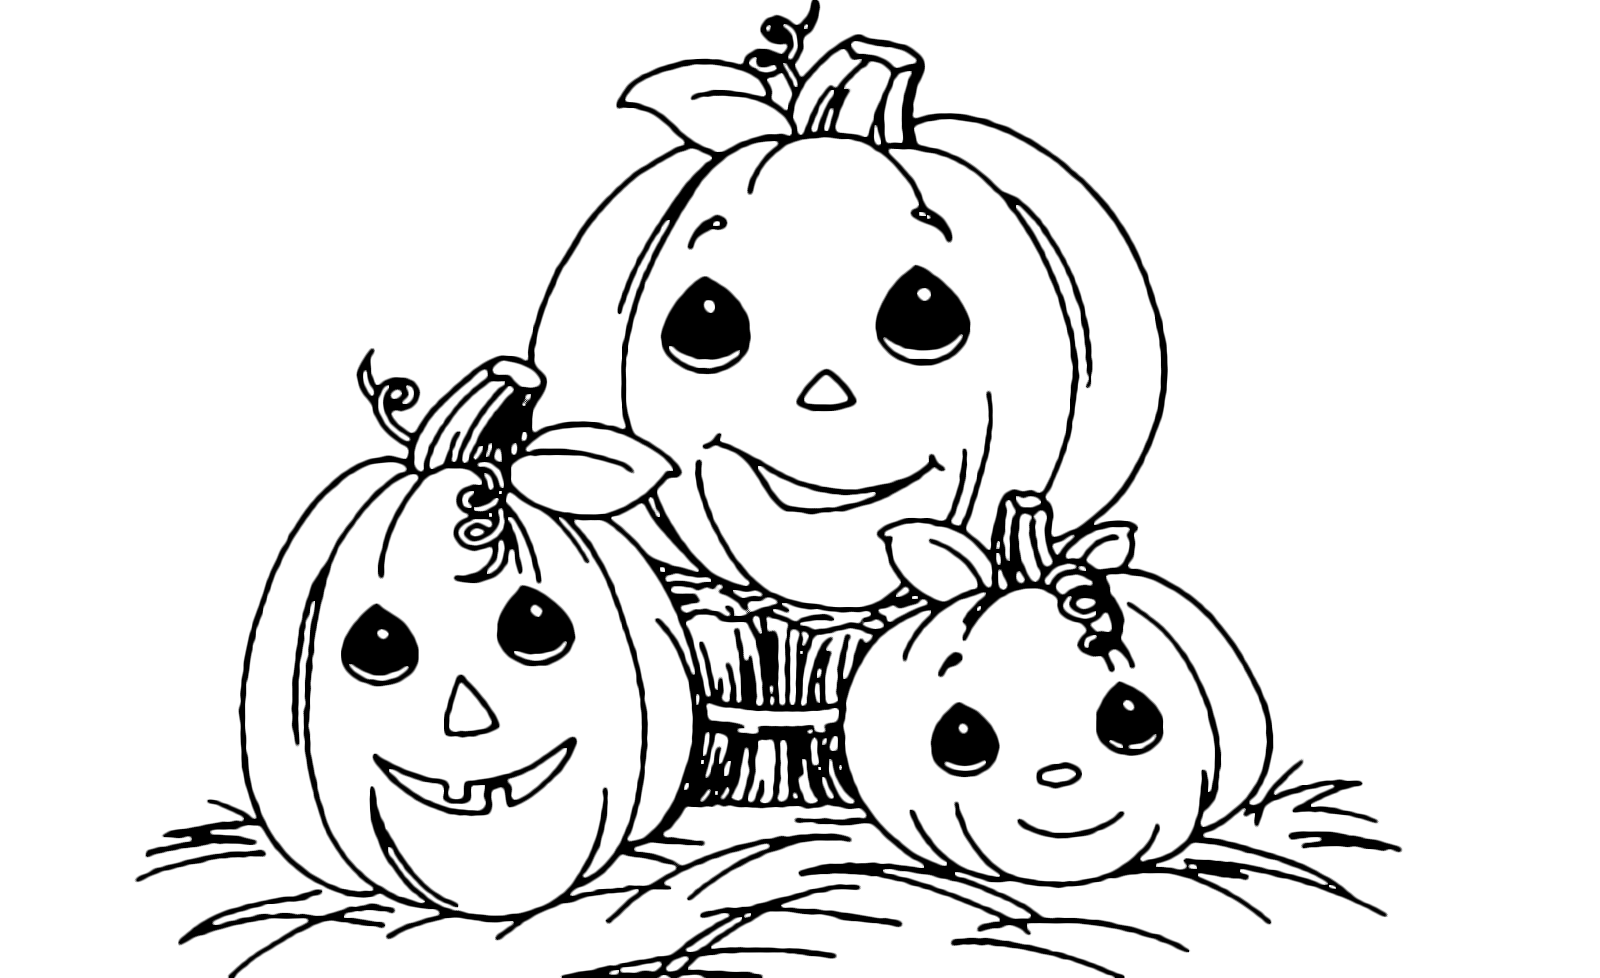 templates | Pumpkin coloring pages, Five little pumpkins, Coloring ... | 978x1600